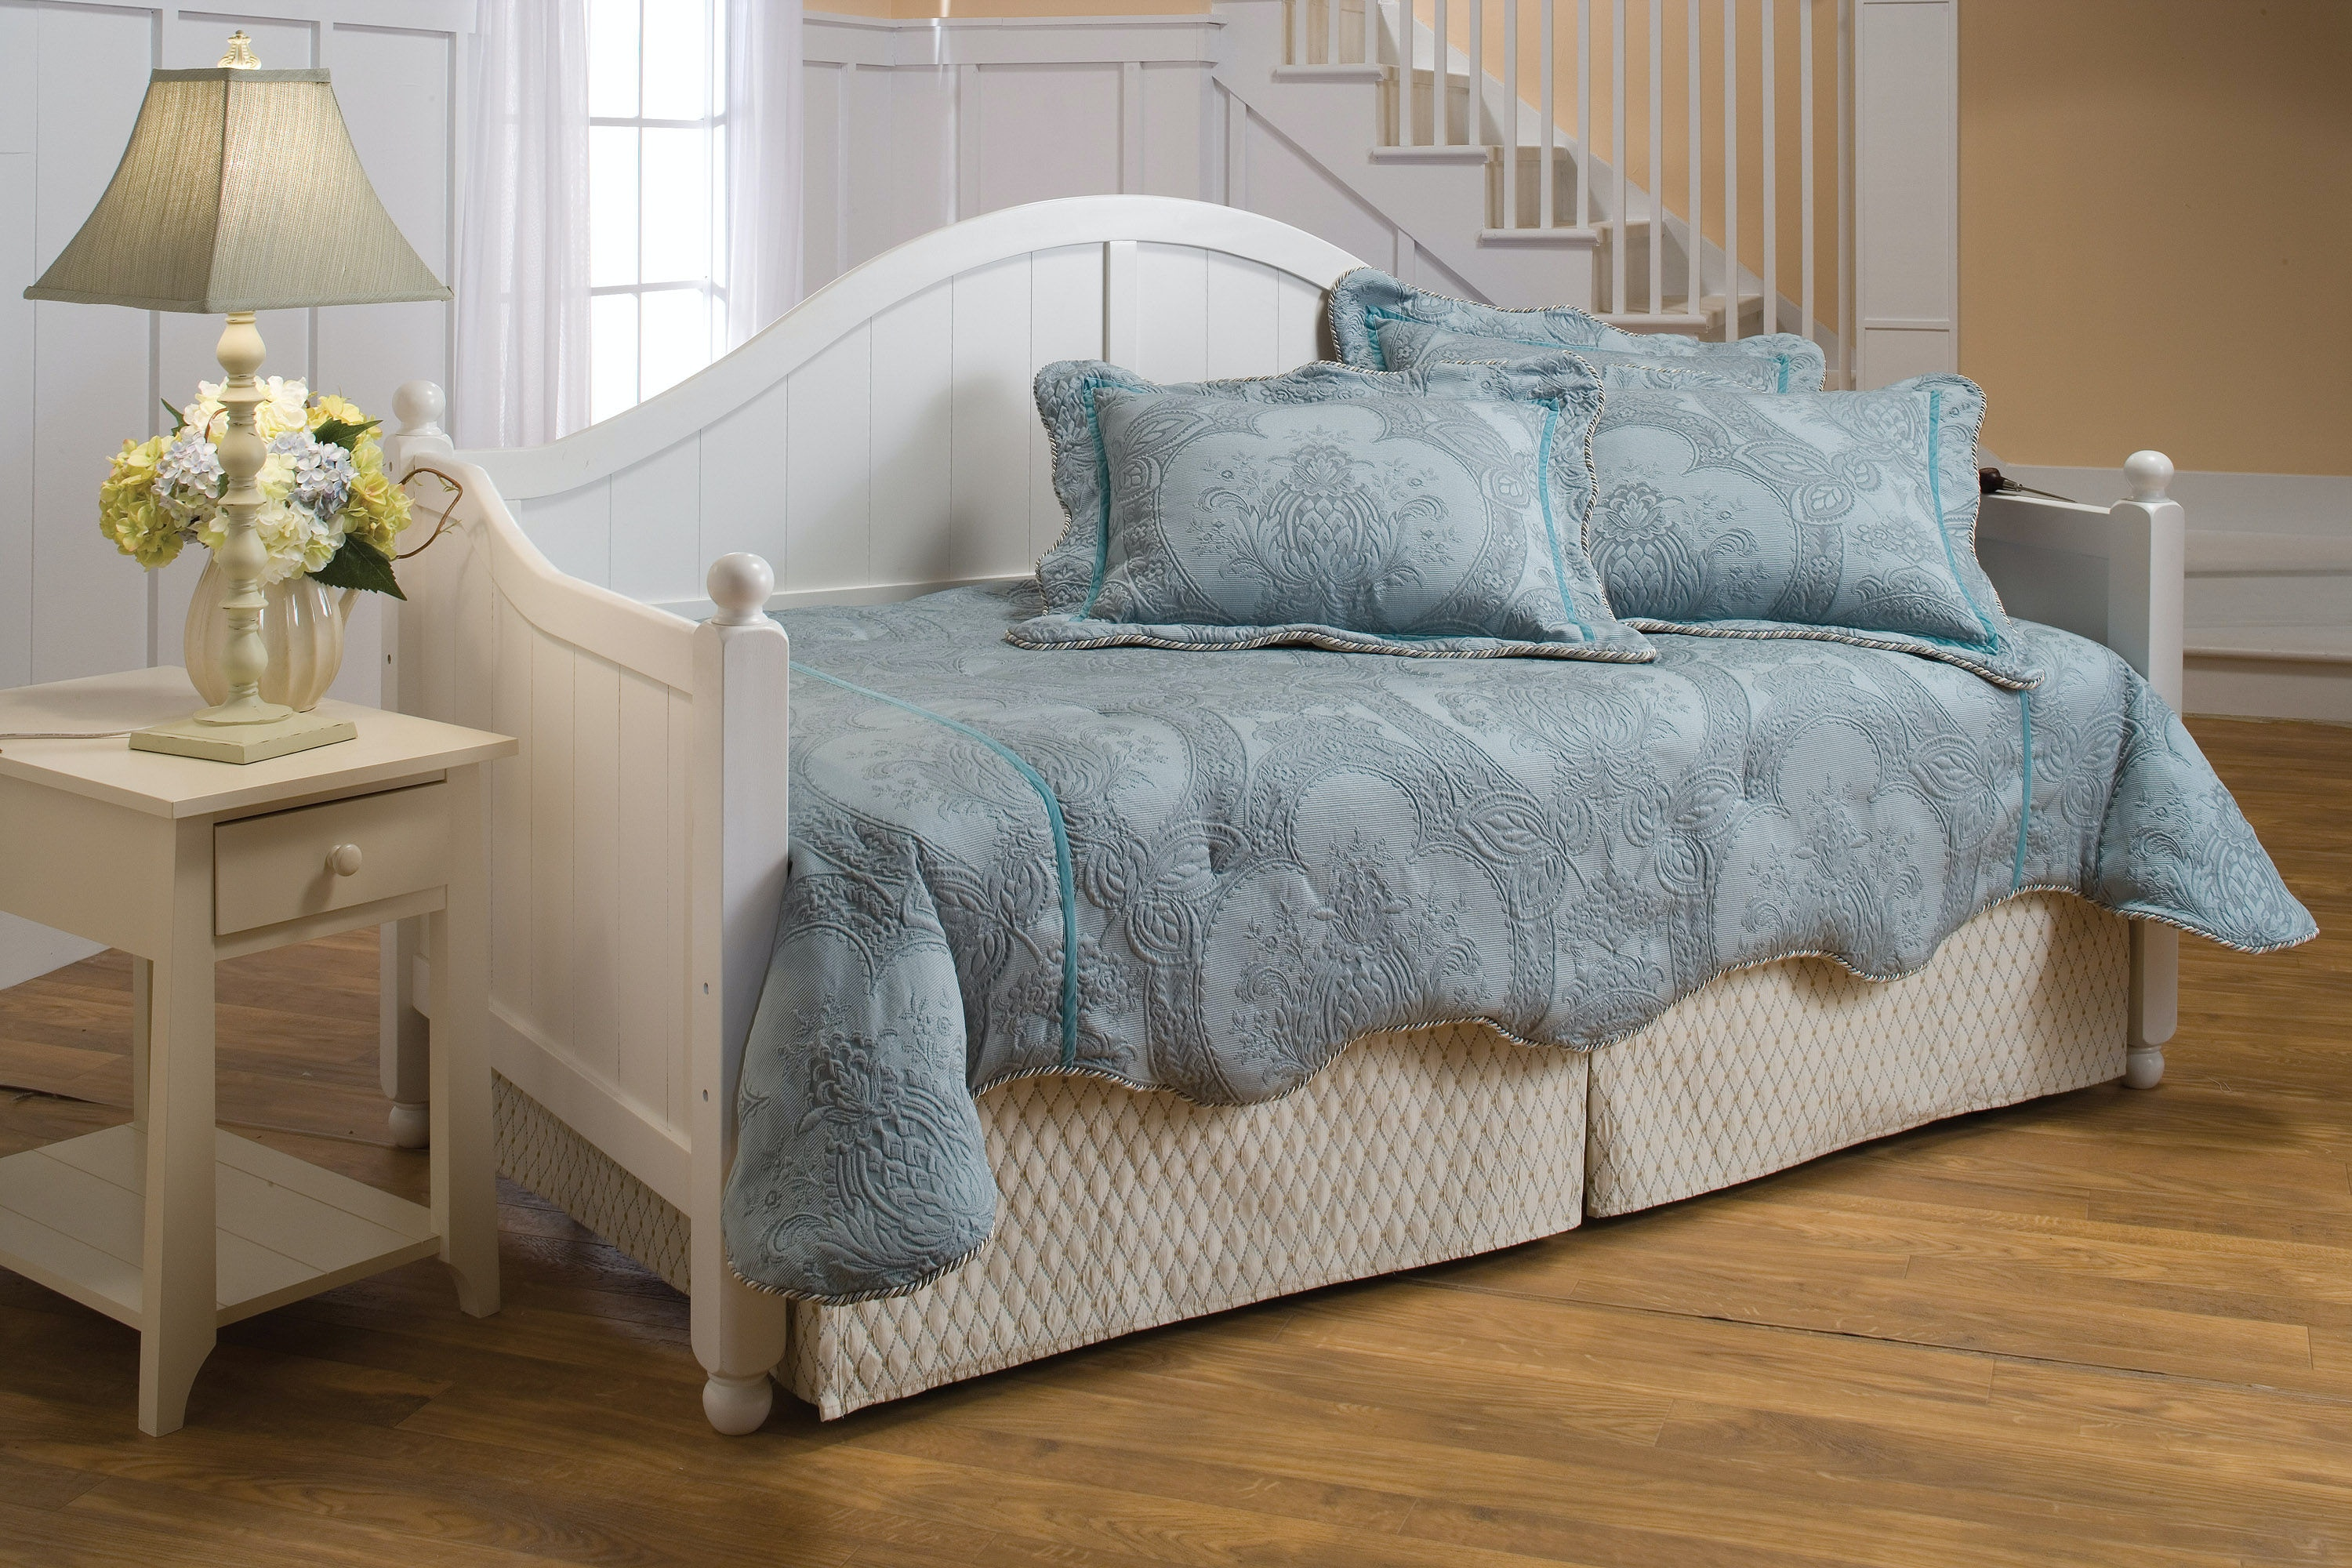 Hillsdale Furniture Bedroom Augusta Daybed 314612 At Talsma Furniture